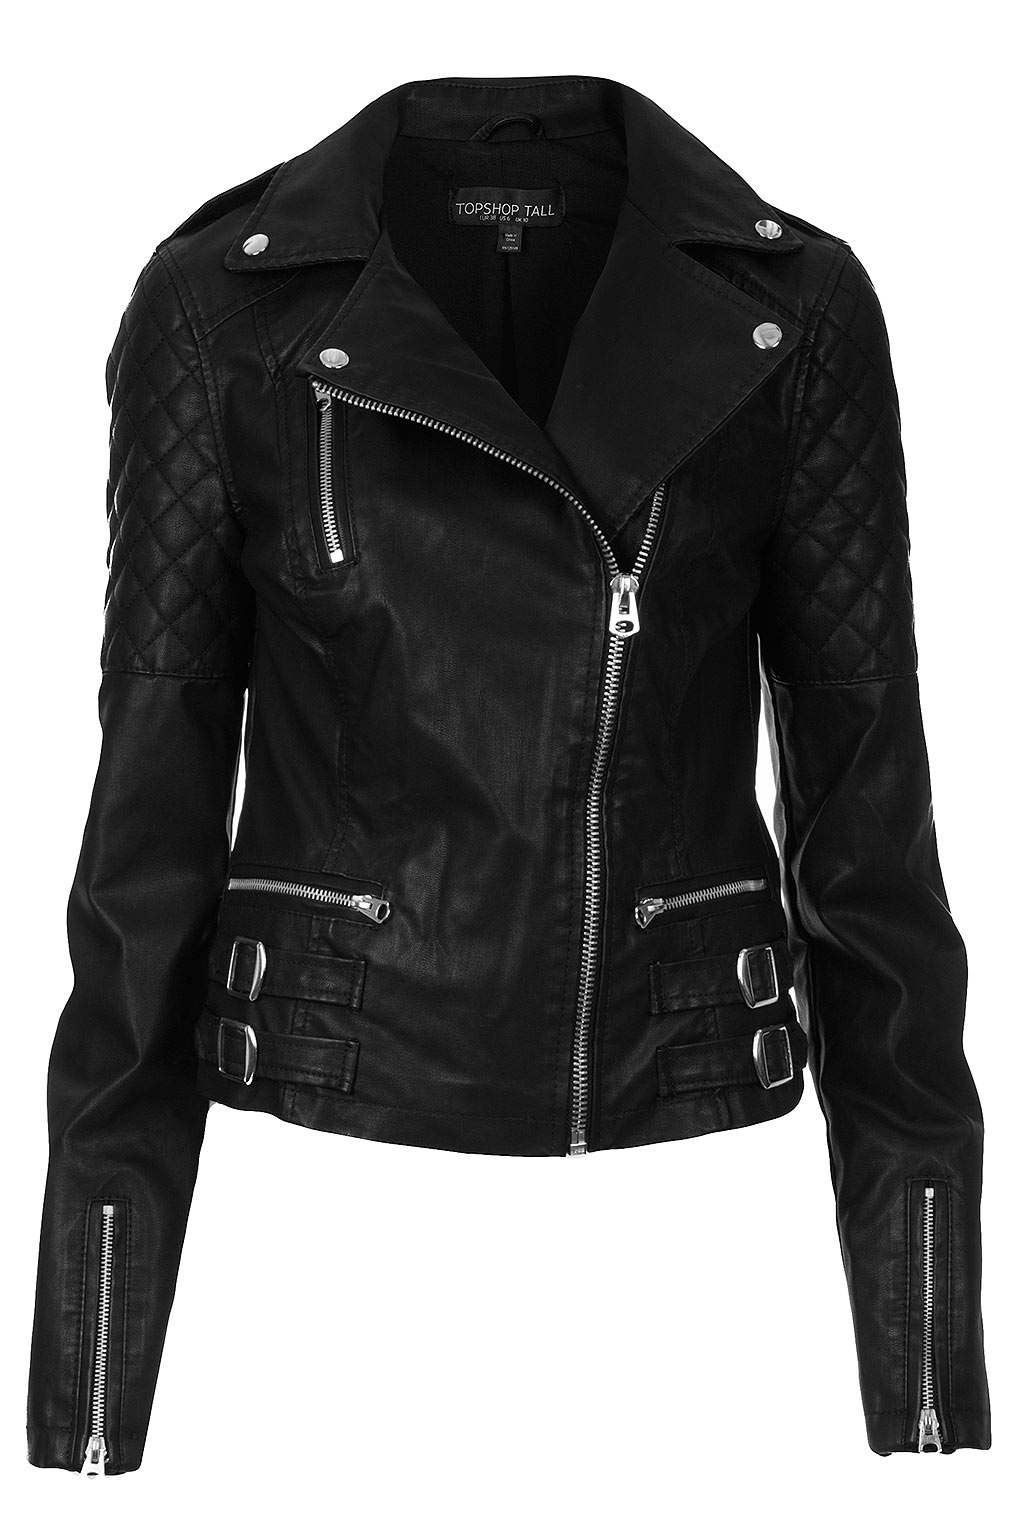 womens black leather jacket tall